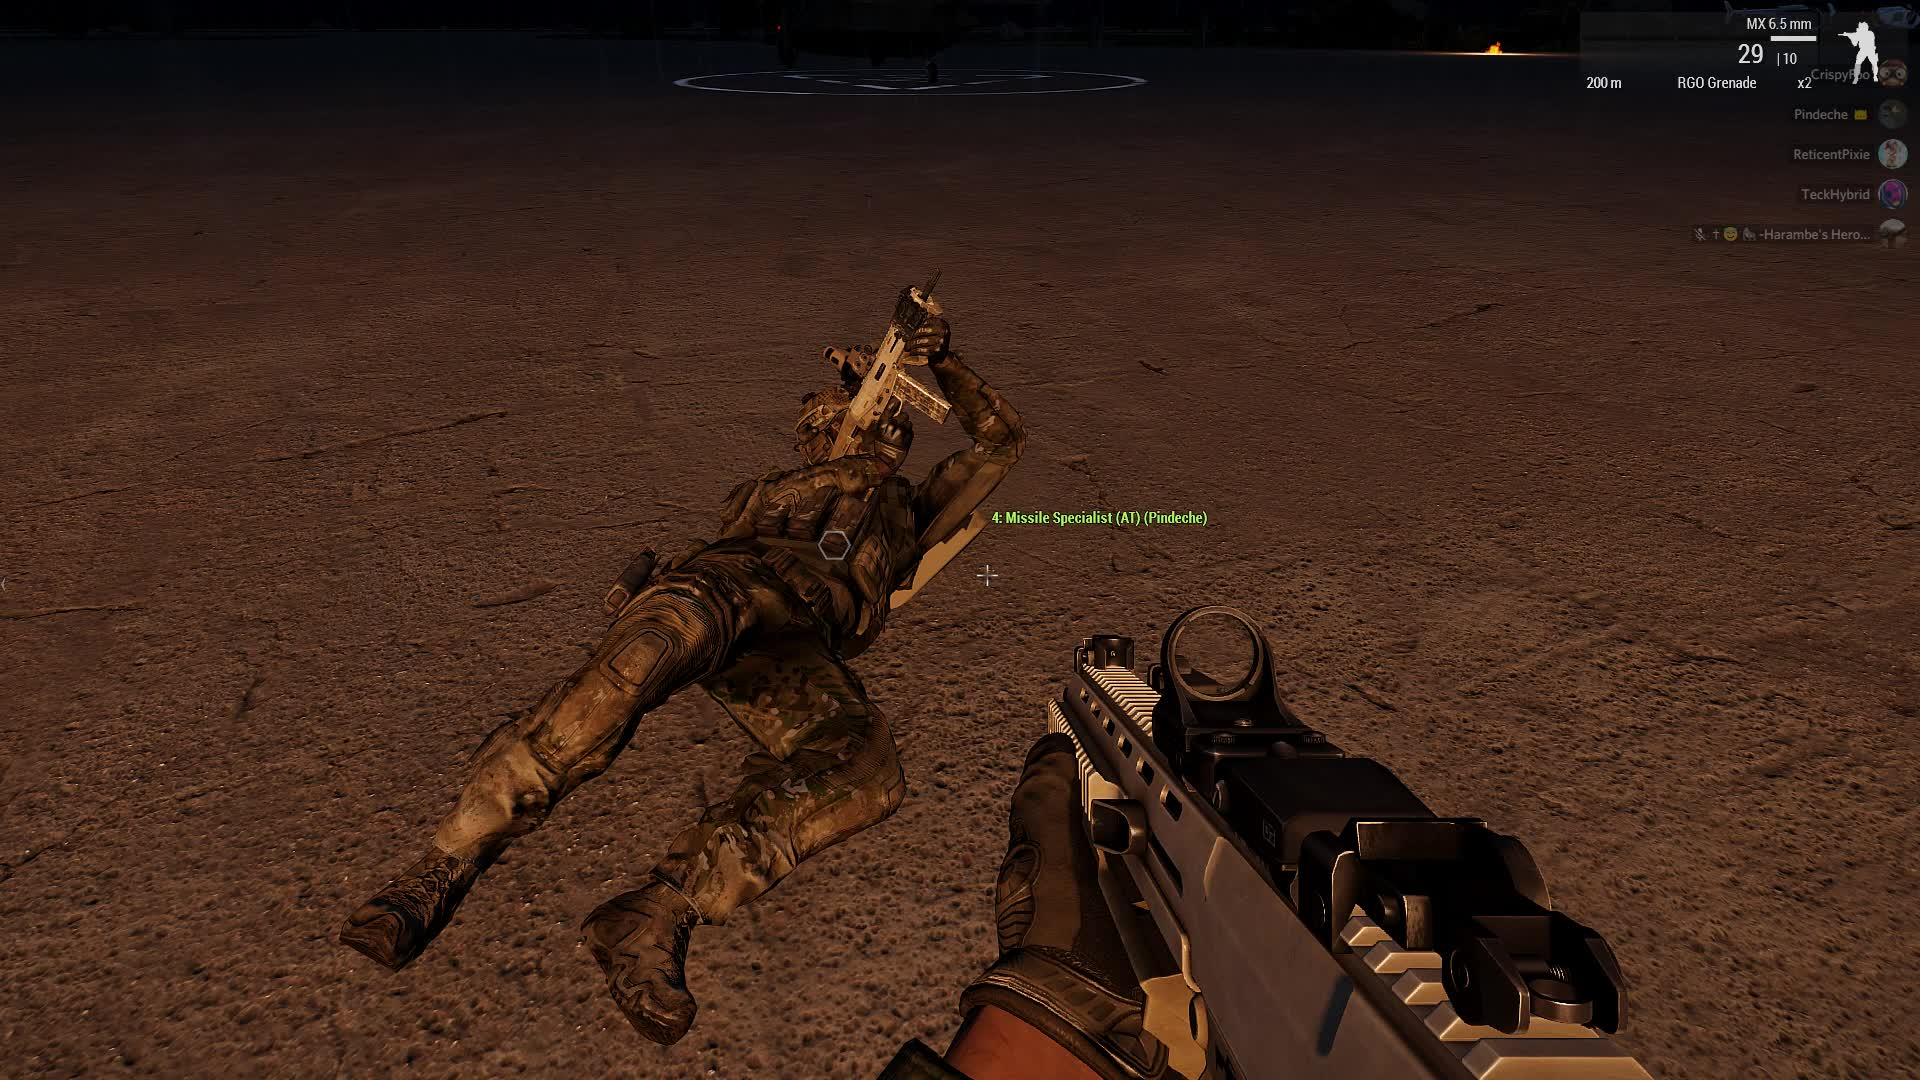 Arma, Arma3, Breakdance, ArmA 3 - Breakdancing GIFs